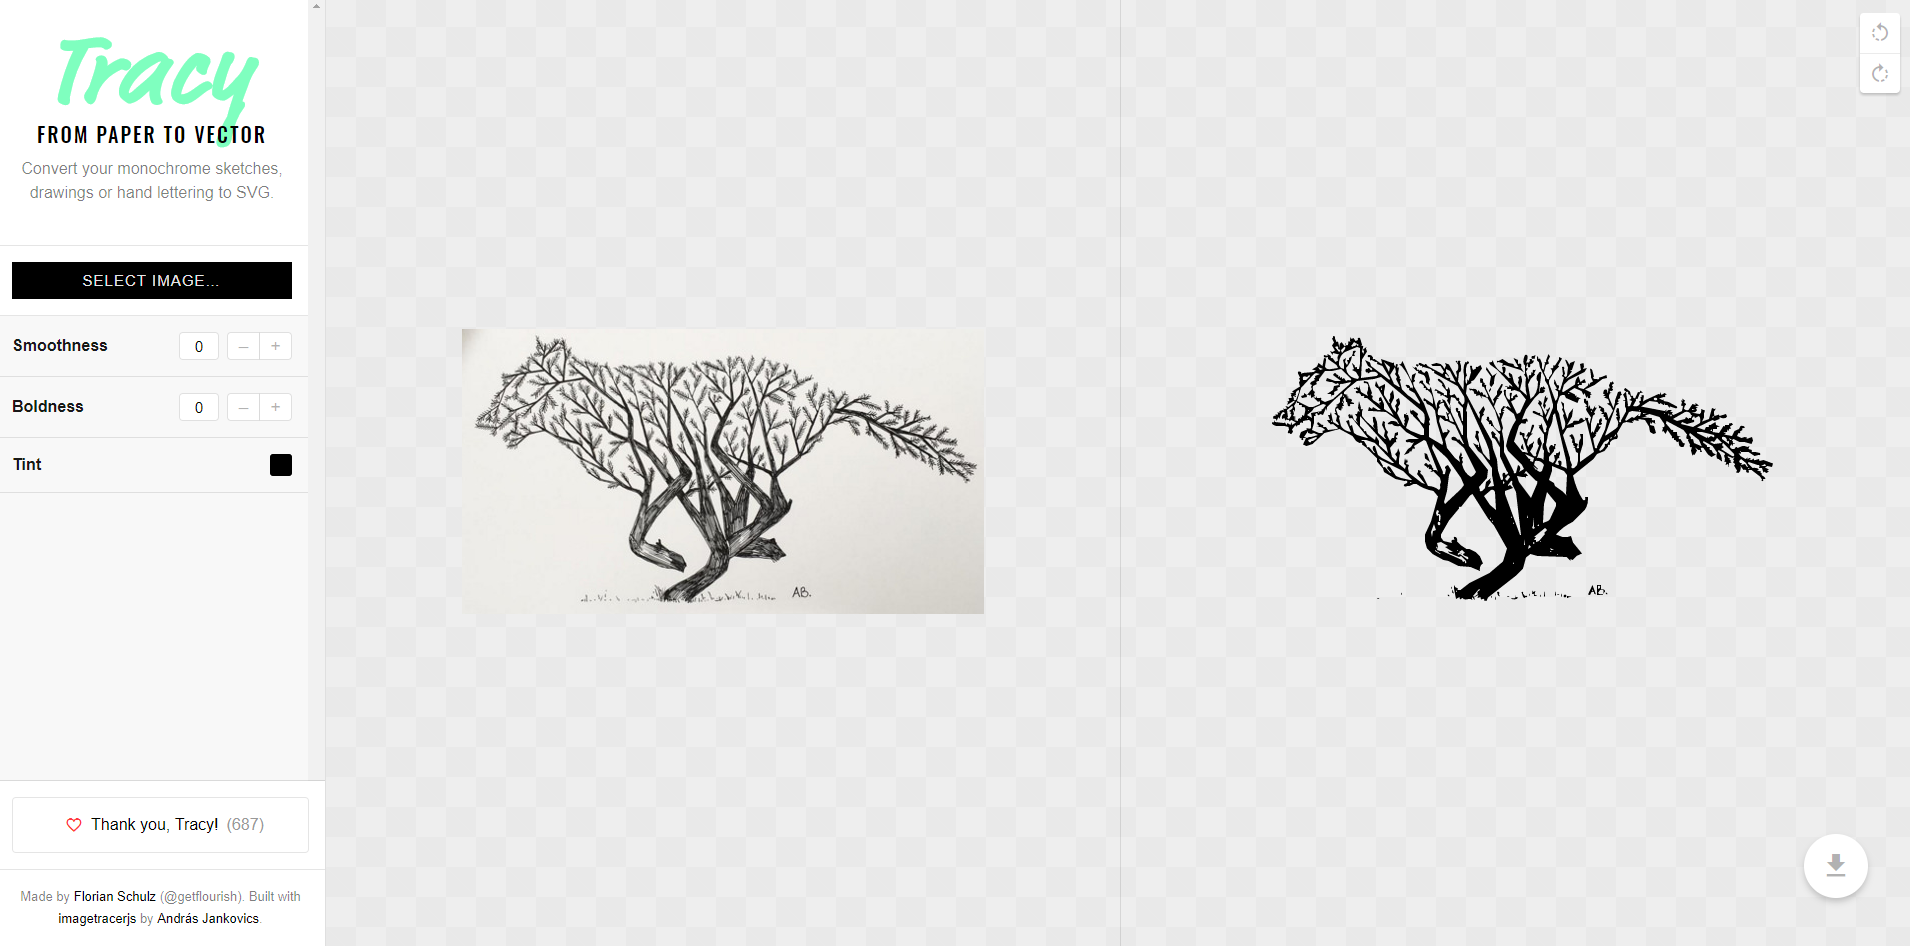 Monochrome Drawings, Sketches, or Even Calligraphy into SVG